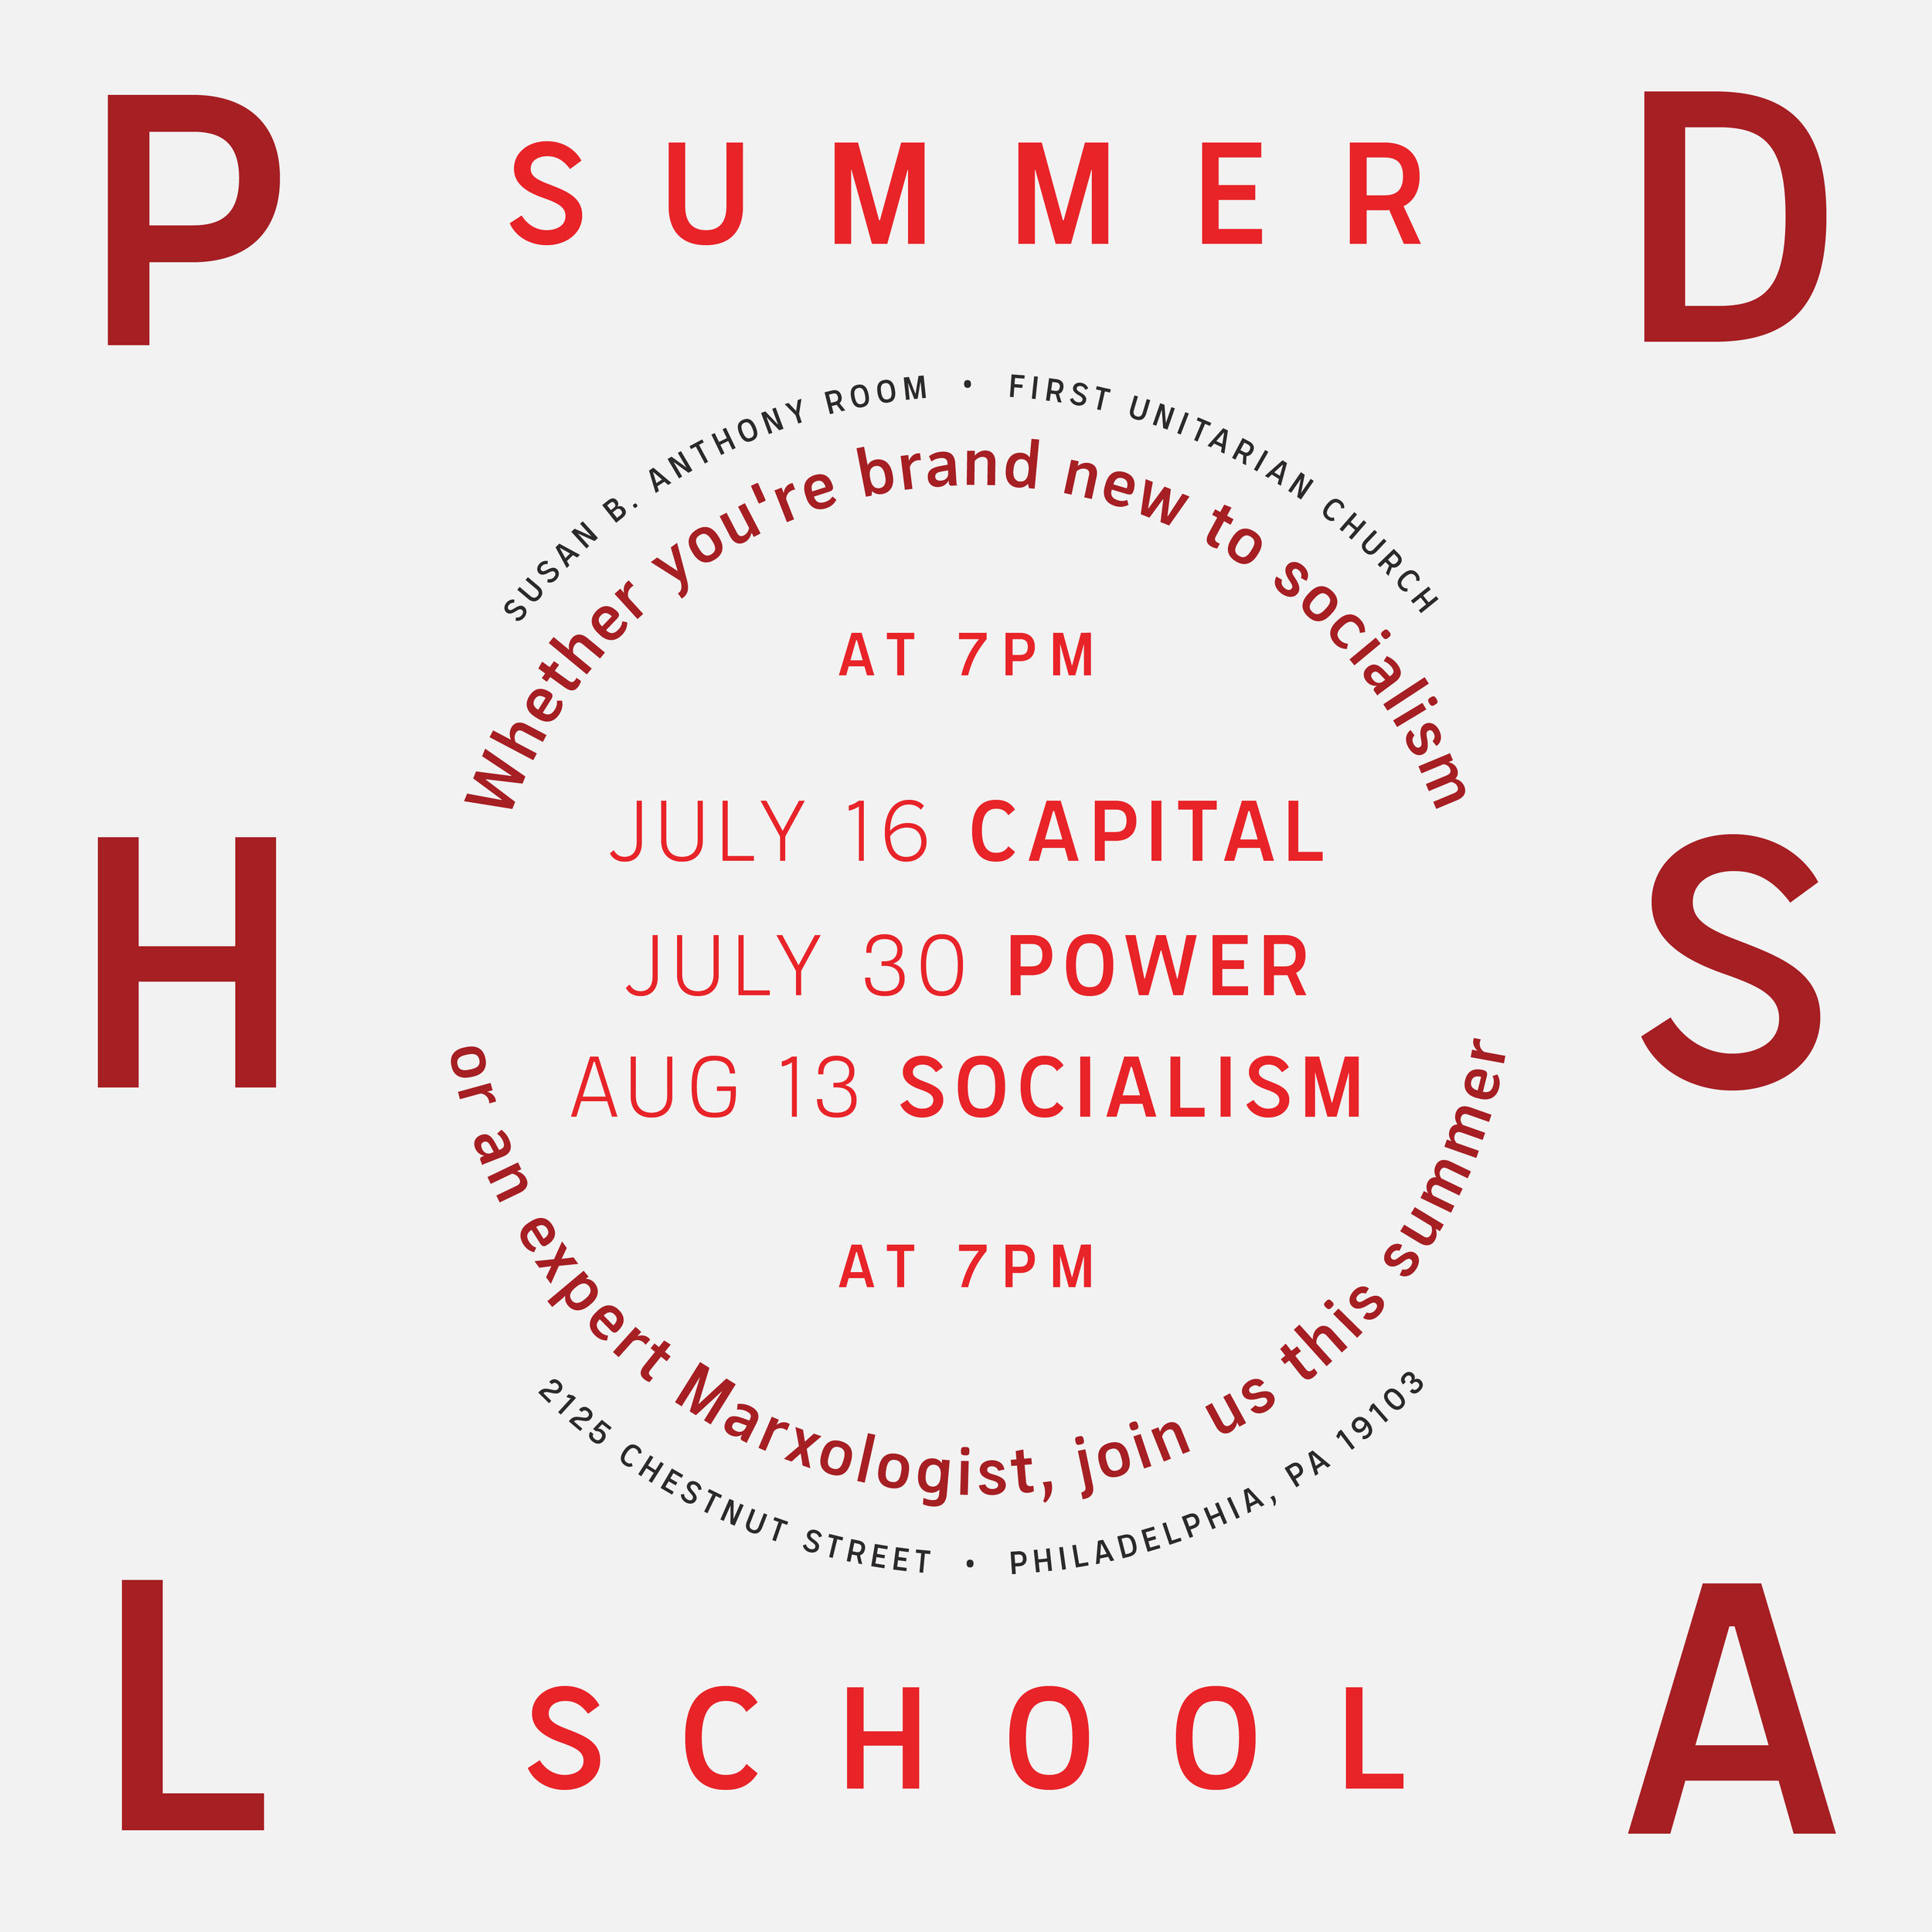 SummerSchoolFlyer_Instagram.jpg